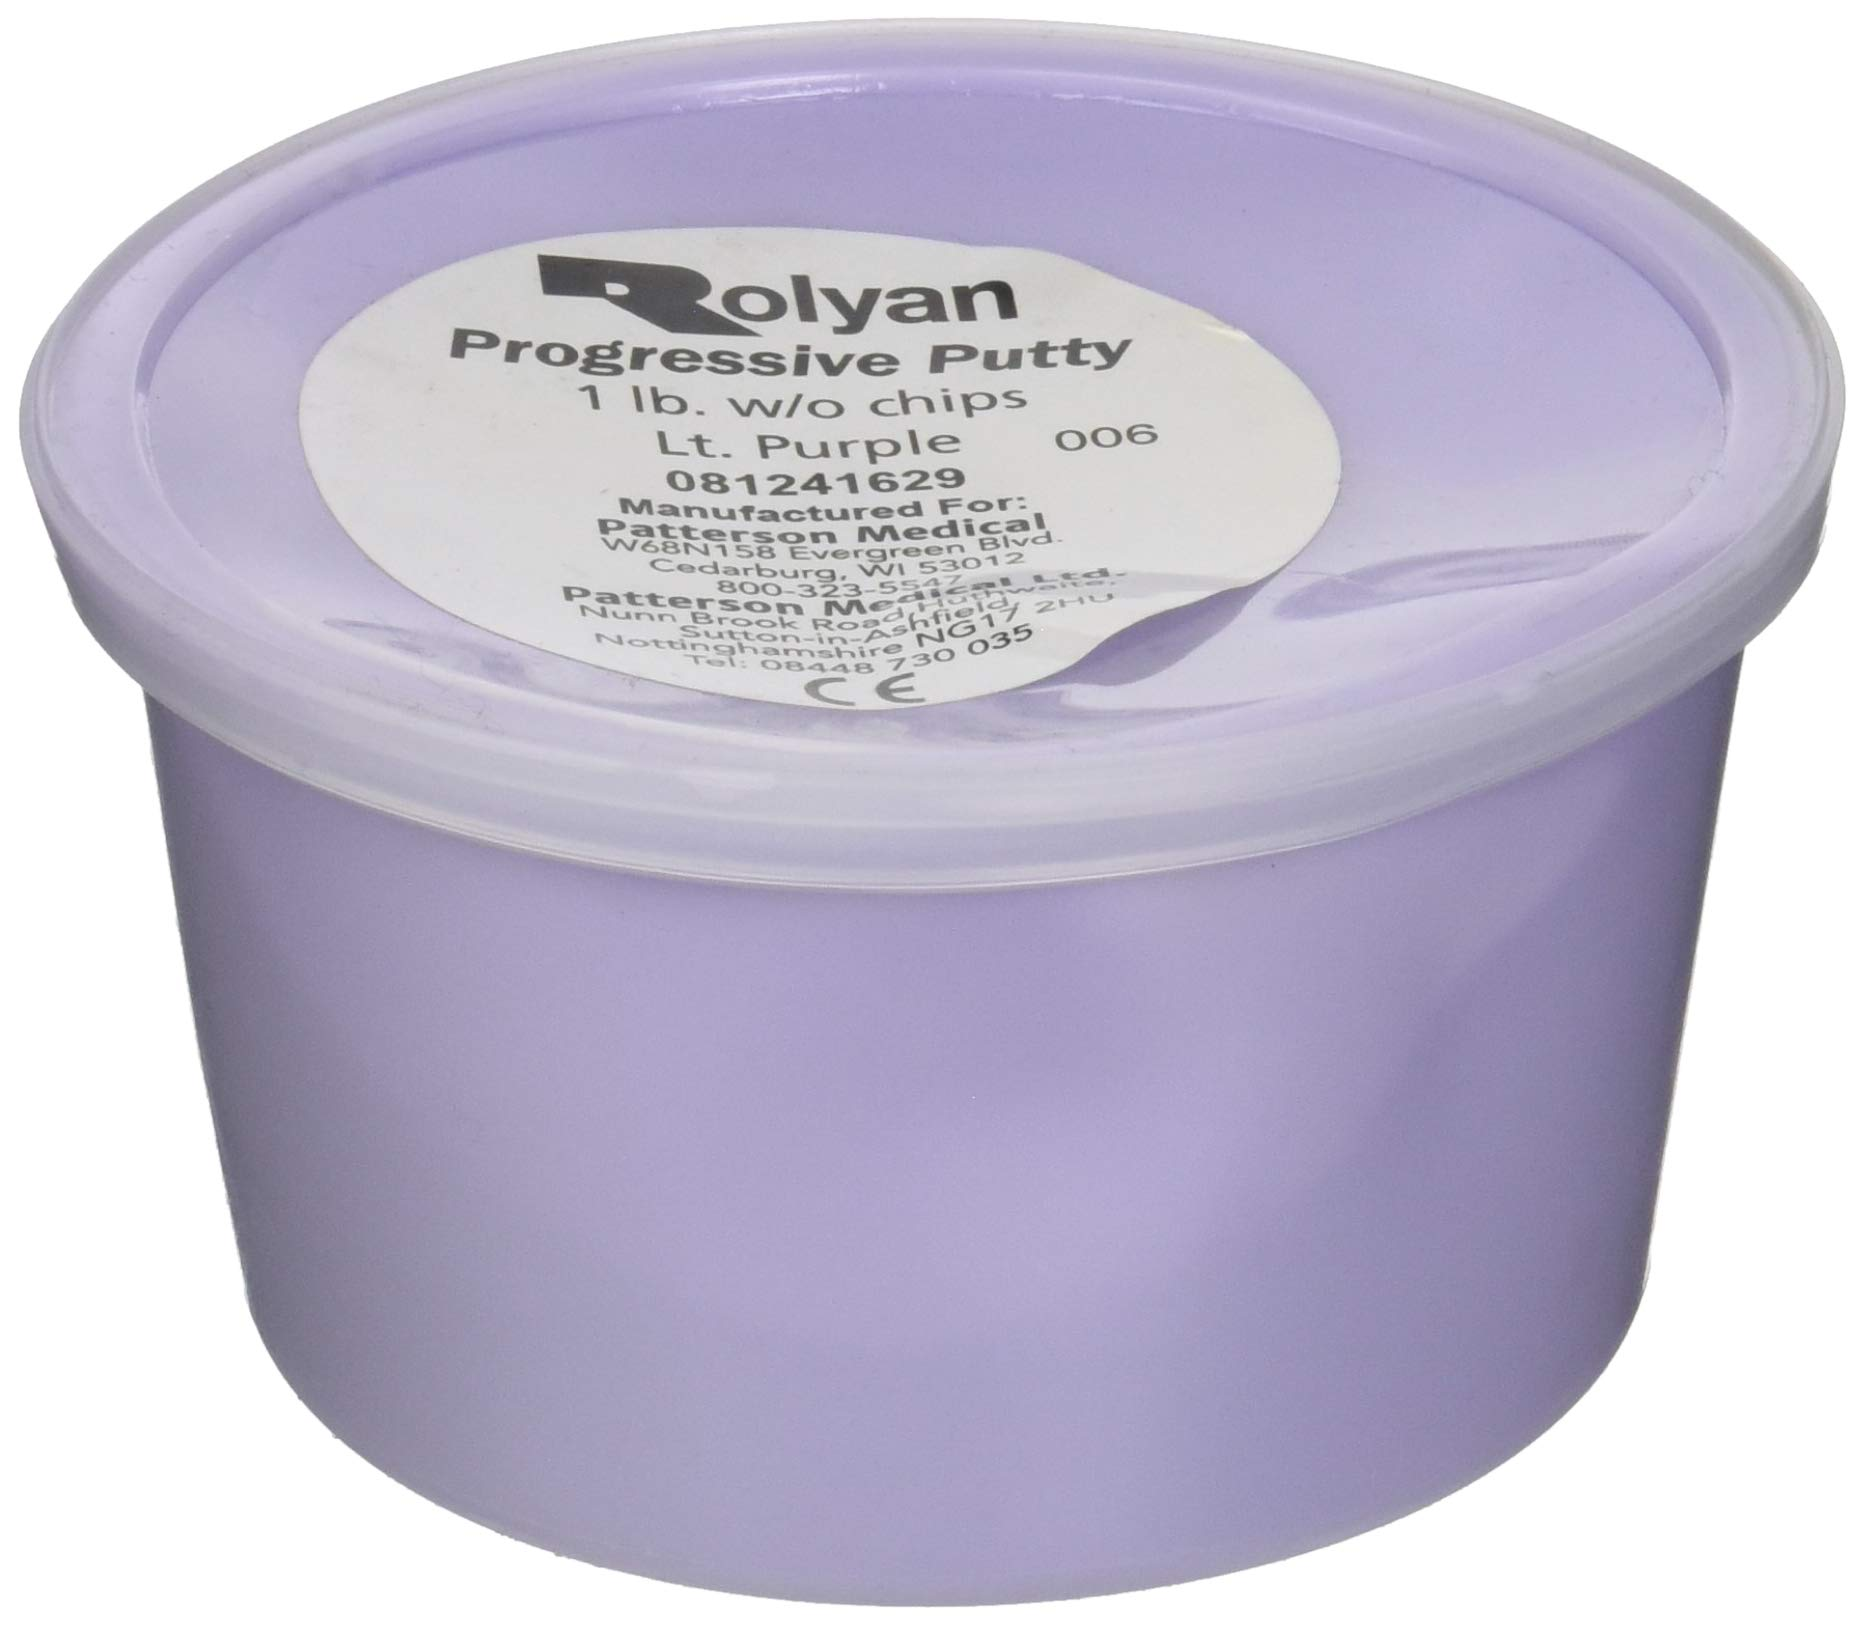 Sammons Preston Progressive Putty for Physical Therapeutic Hand Exercises, Flexible Putty for Finger and Hand Recovery and Rehabilitation, Occupational Therapy, 1 Pound, Without Progress Chips